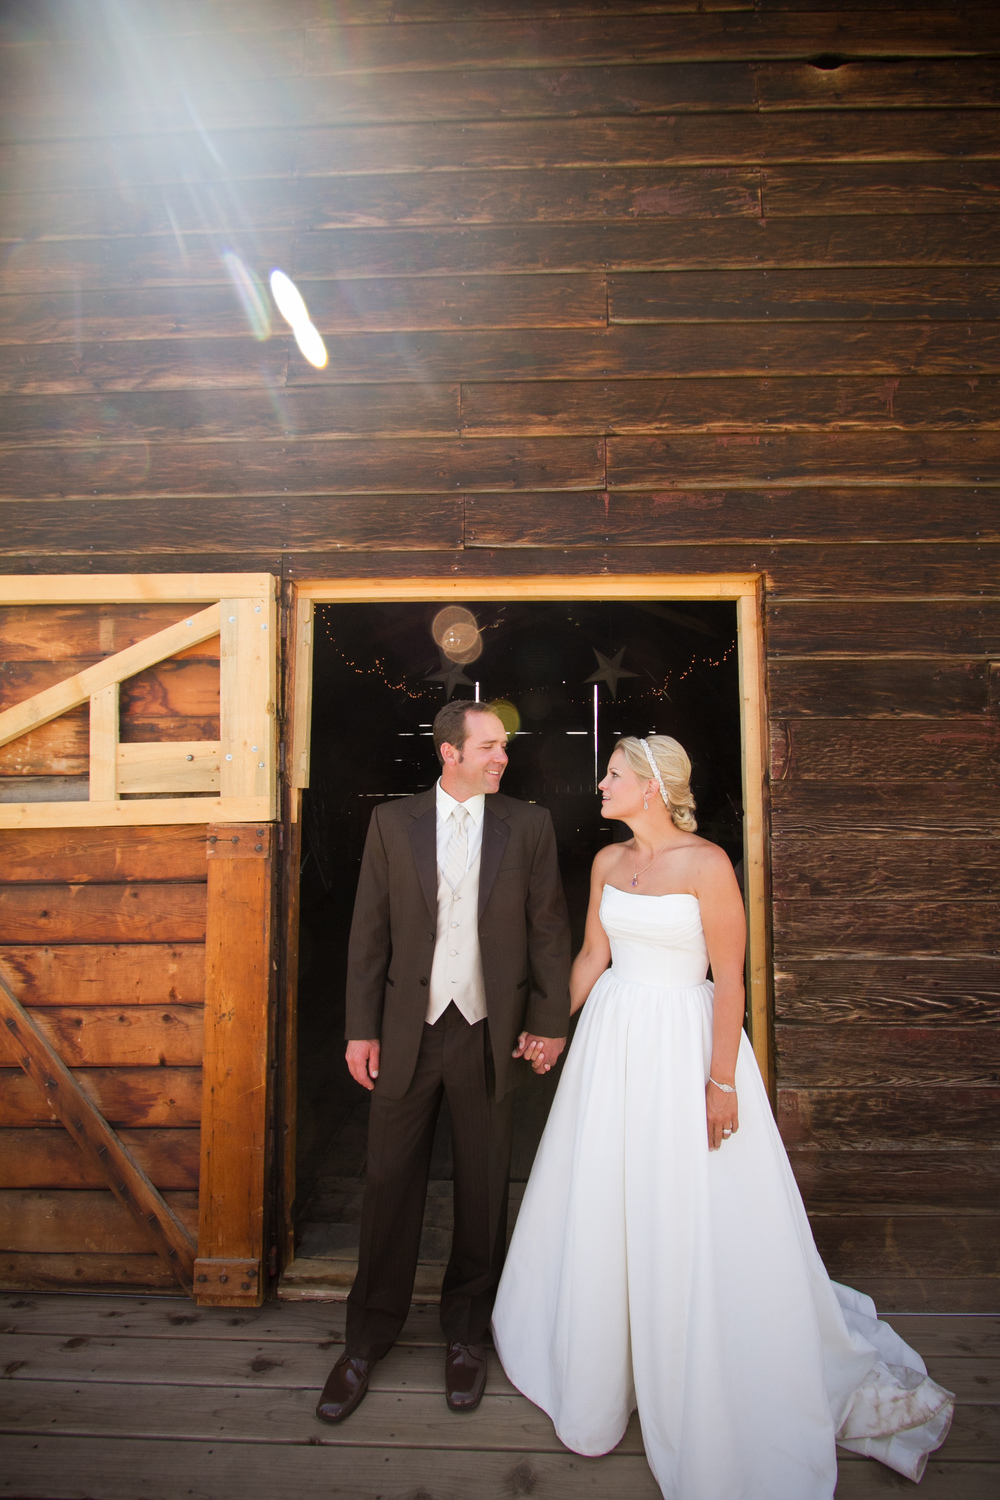 Steamboat_Springs_Wedding_021.JPG